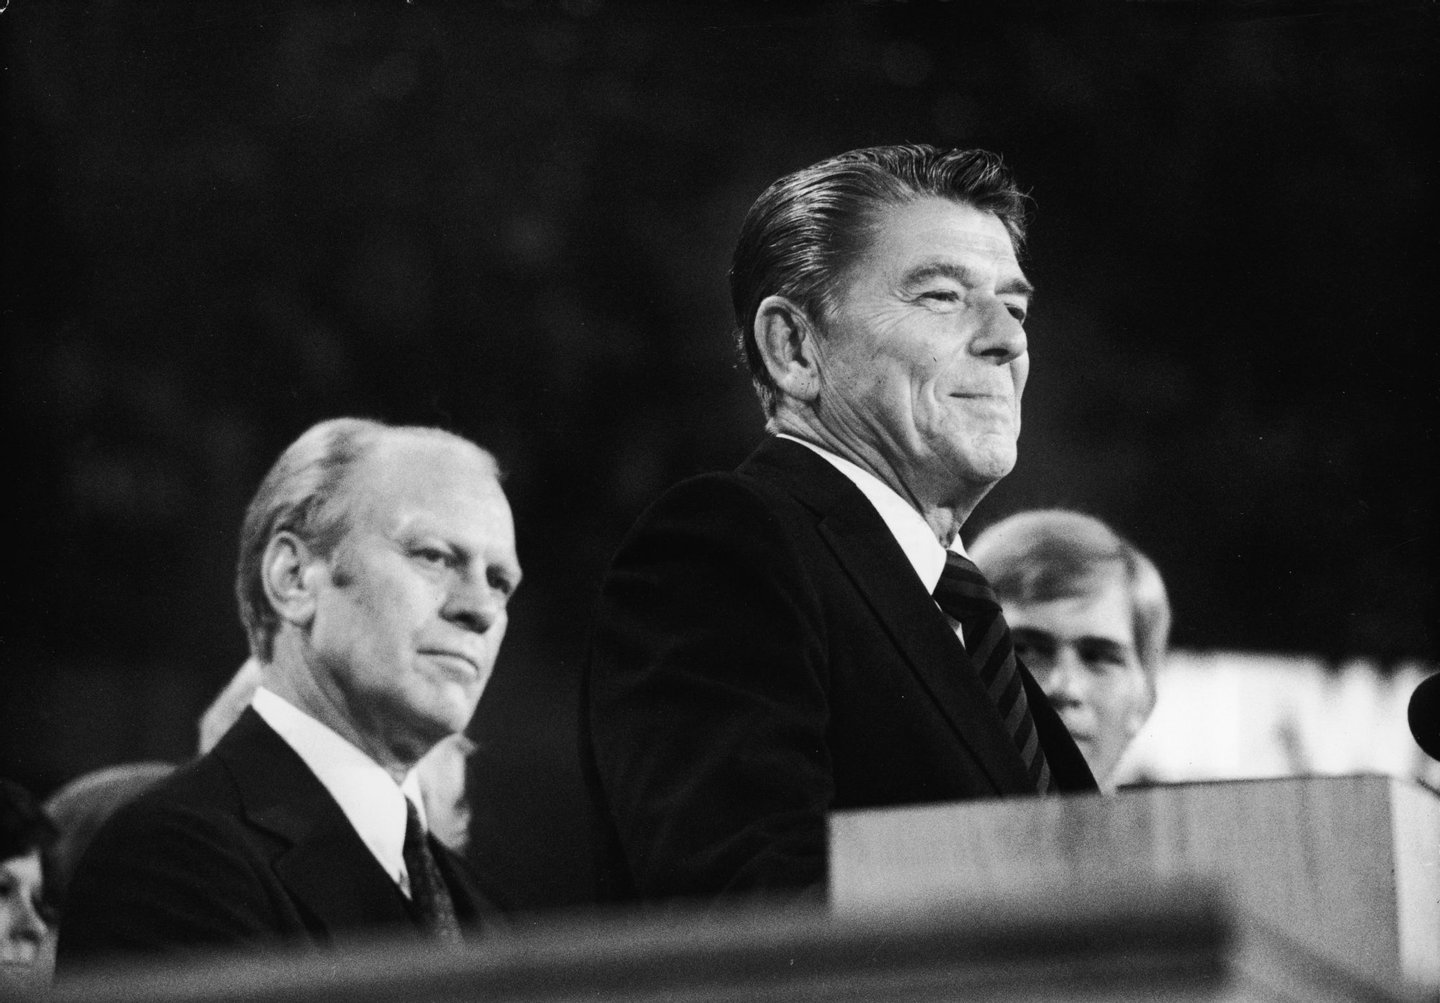 American president Gerald Ford (left) listens as future American president Ronald Reagan (1911 - 2004) delivers a speech during the closing session of the Republican National Convention, Kansas City, Missouri, August 19, 1976. (Photo by Hulton Archive/Getty Images)